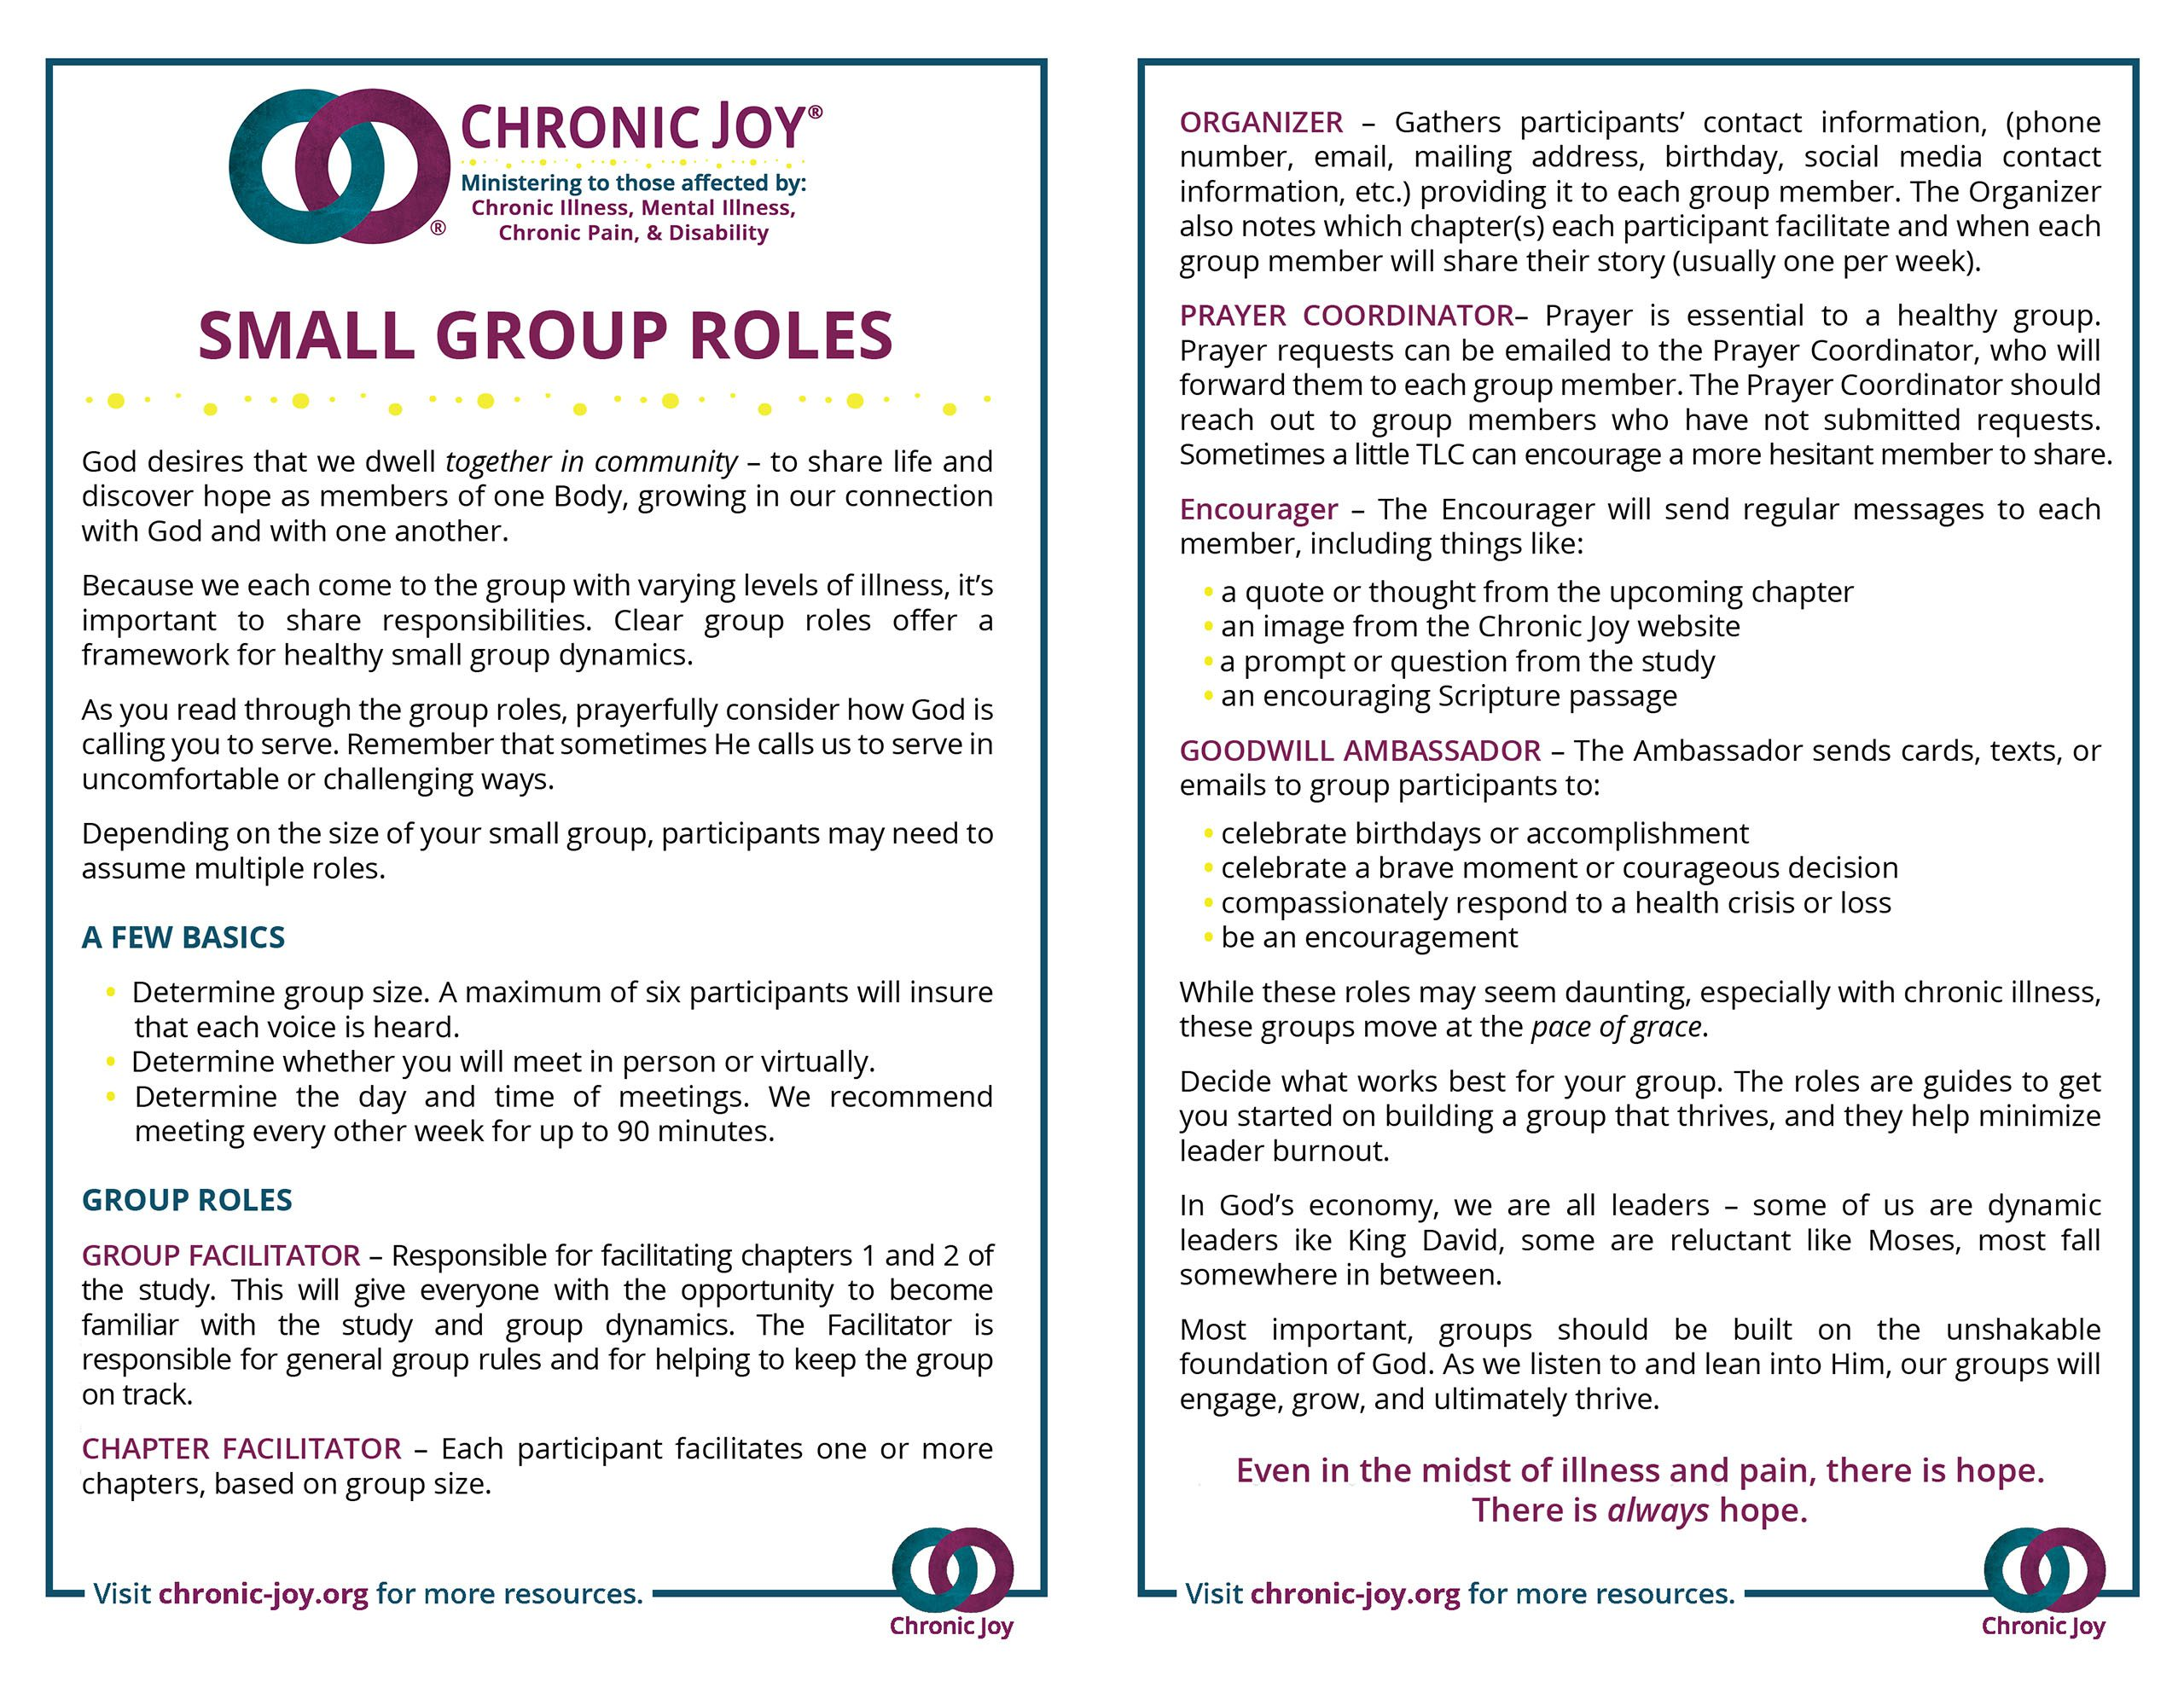 Small Group Roles